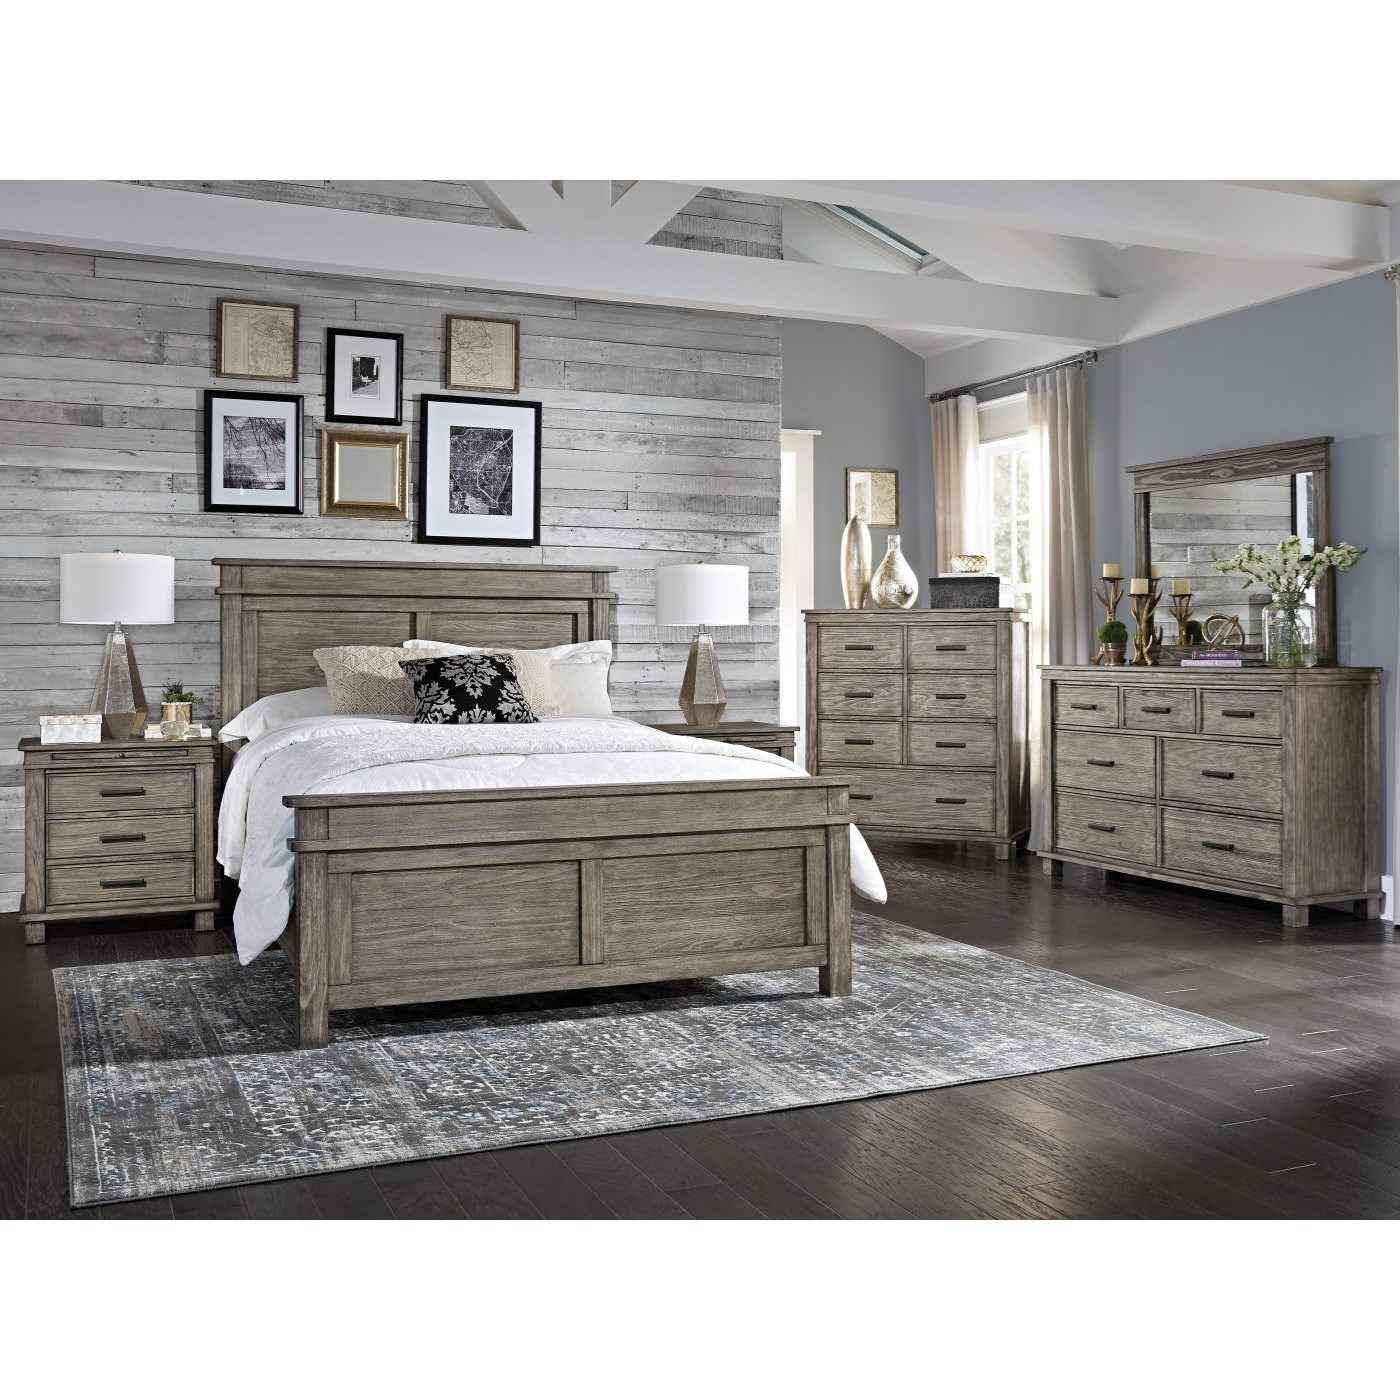 Glacier Point King Bedroom Group by A-A at Walker's Furniture